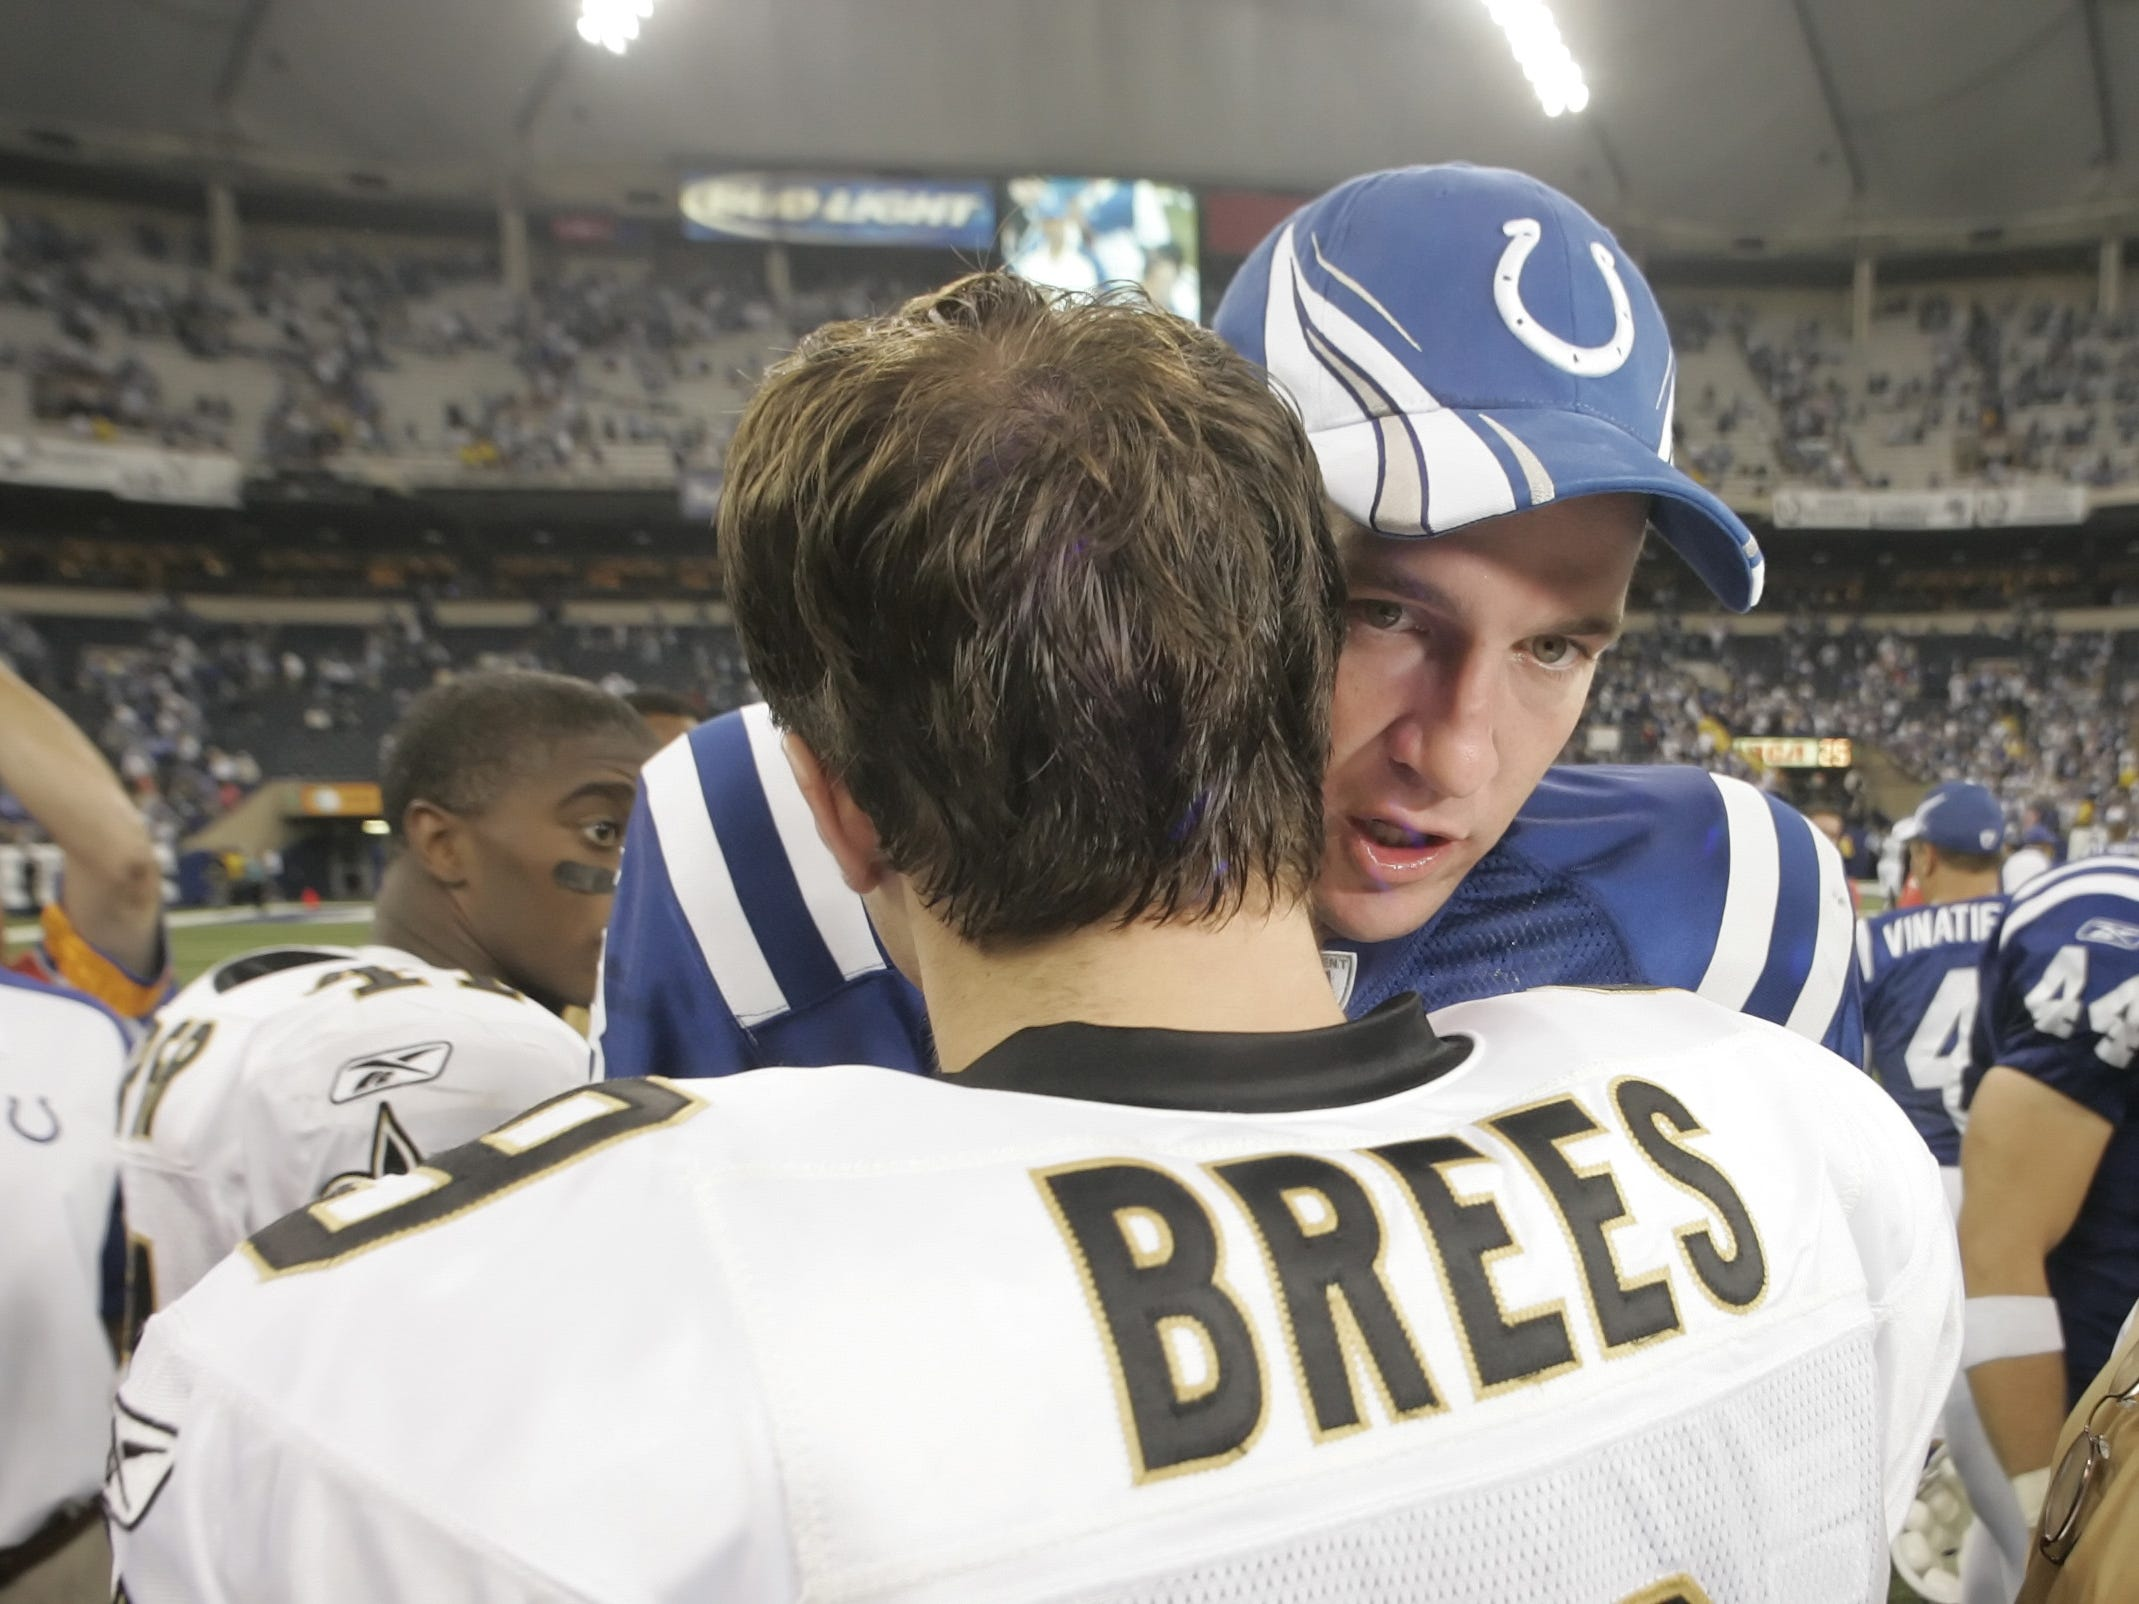 2007: The Colts Peyton Manning spoke with Brees after a game Sept. 6 at the RCA Dome. The Colts won, 41-10.